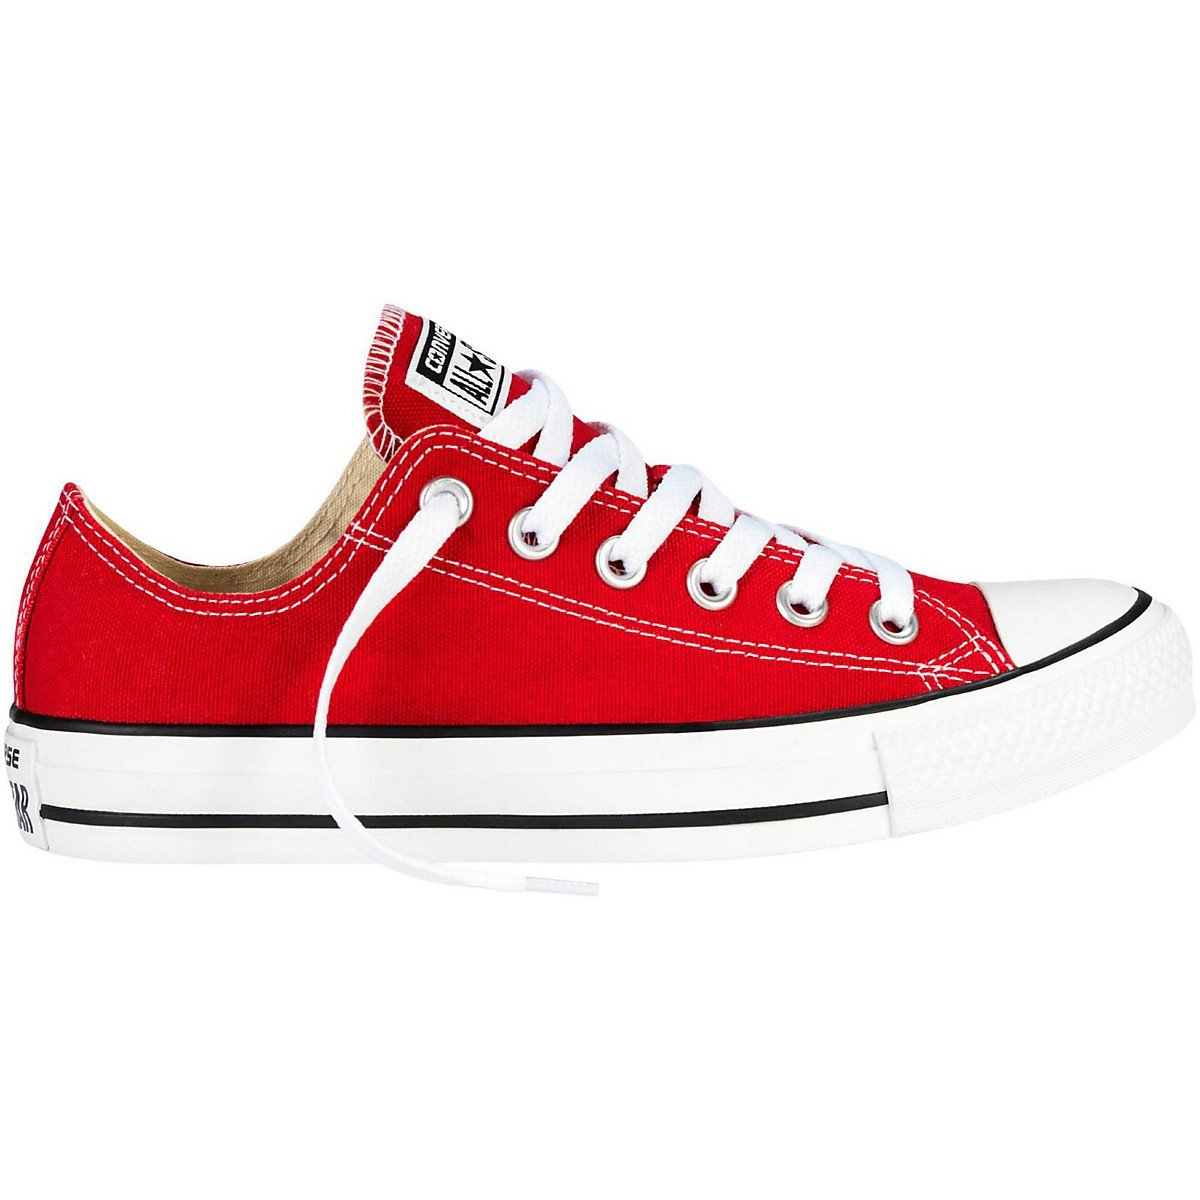 Converse Unisex Chuck Taylor All Star Ox Low Top Days Ahead Sneakers - 10 B(M) US Women / 8 D(M) US Men